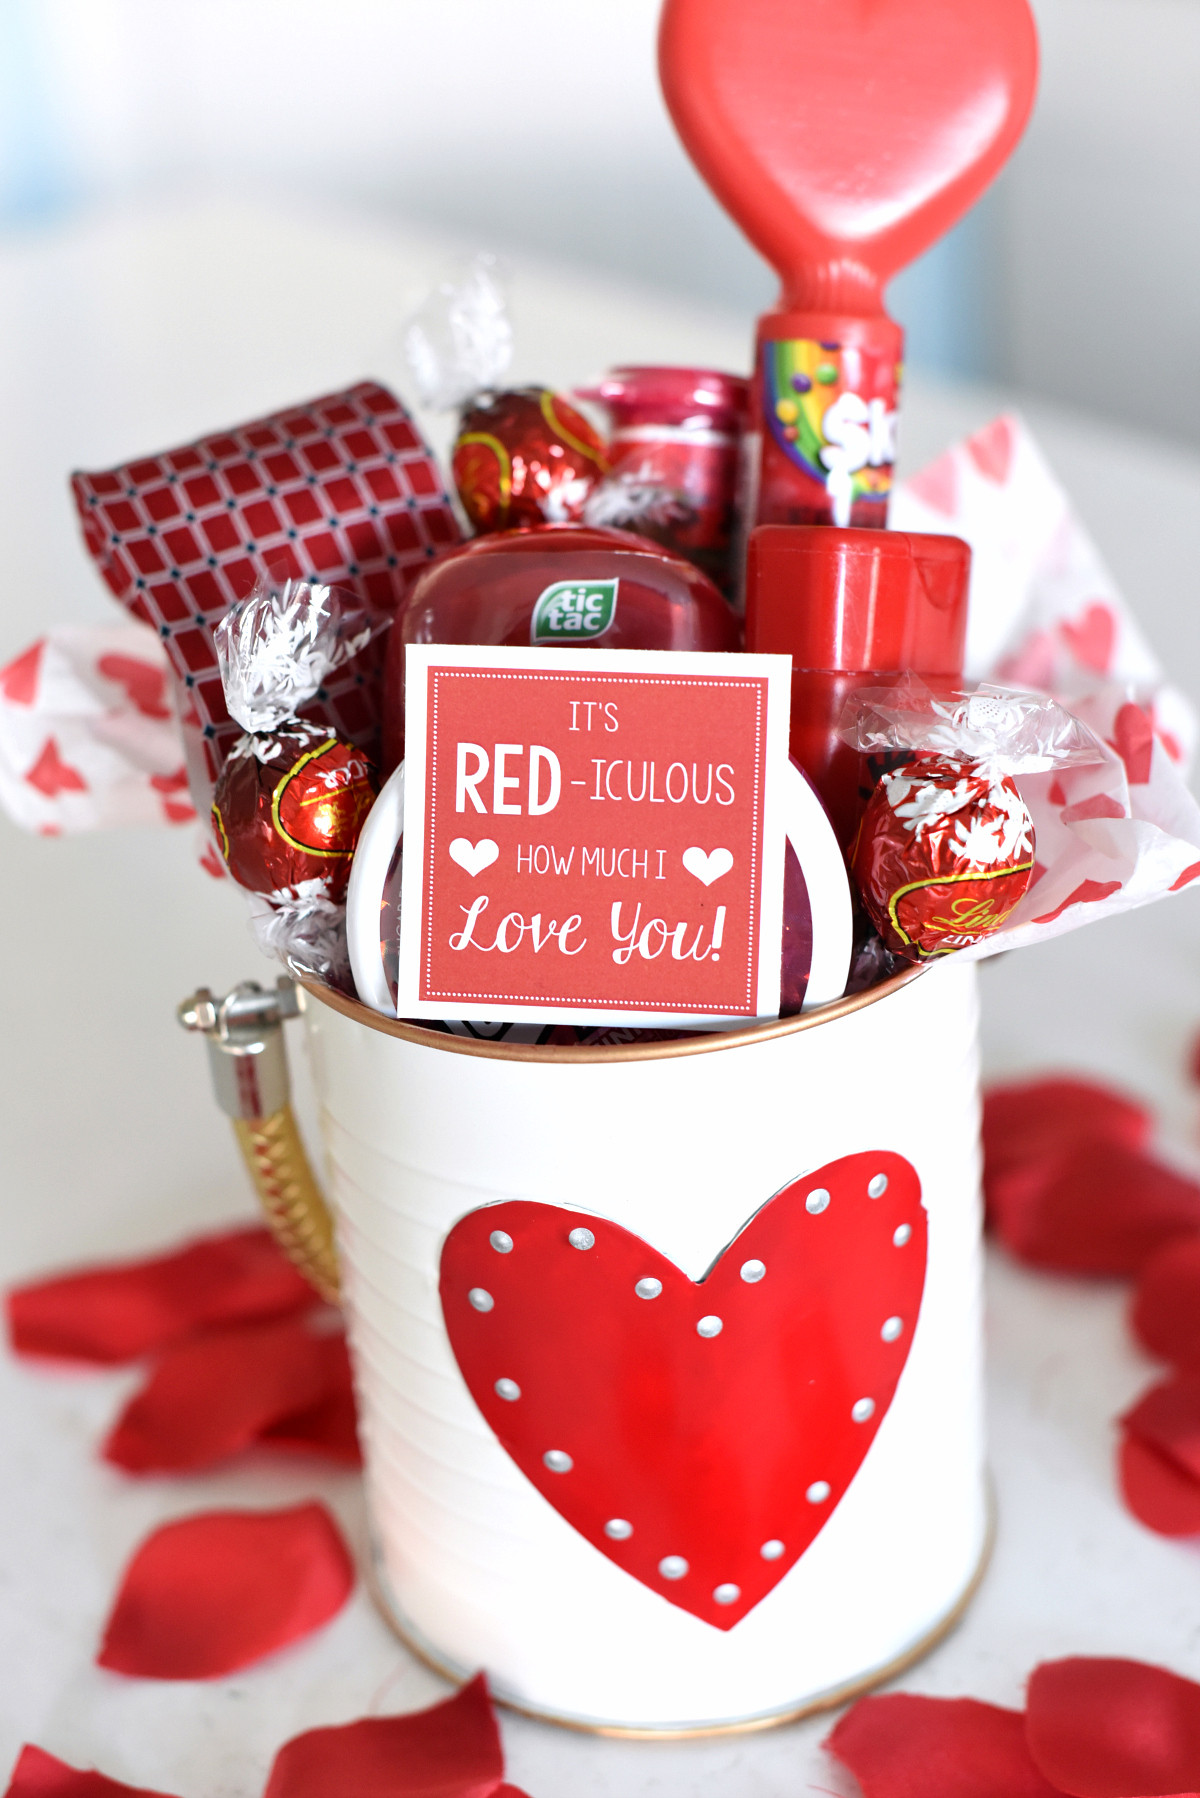 Valentine Gift For Husband Ideas  Cute Valentine s Day Gift Idea RED iculous Basket